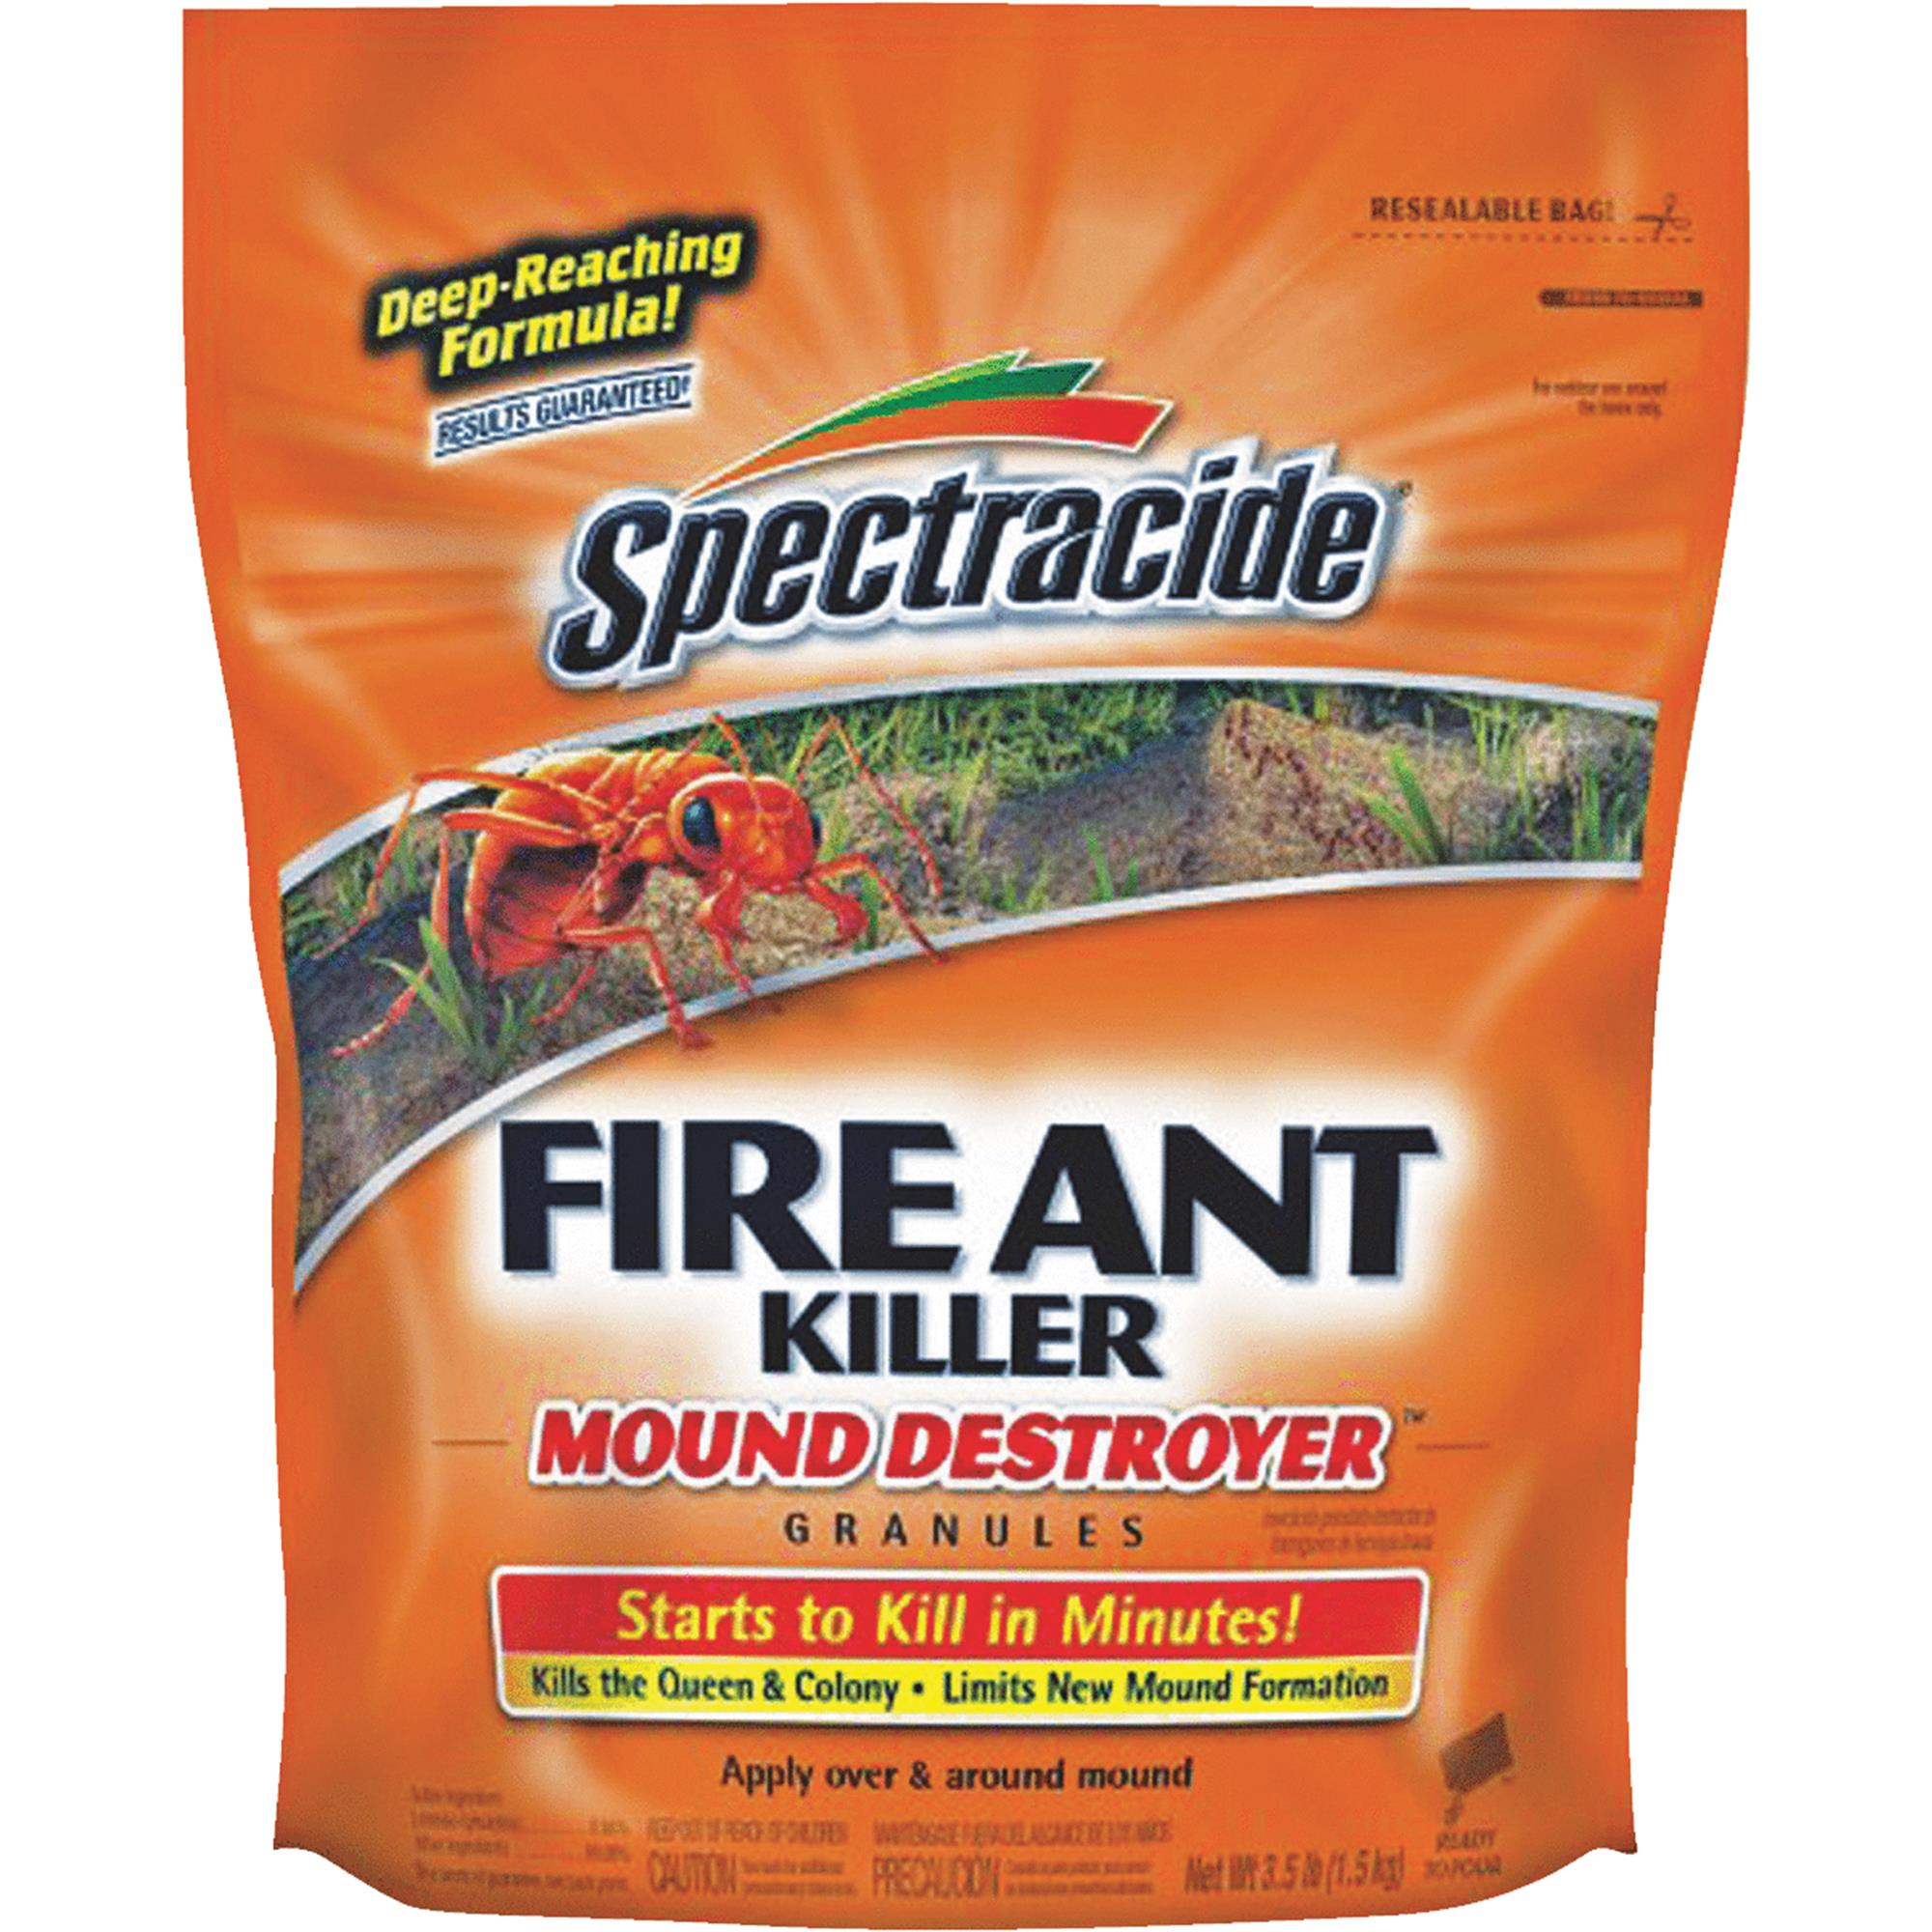 Spectracide Fire Ant Shield Mound Destroyer Granules, 3.5 lb